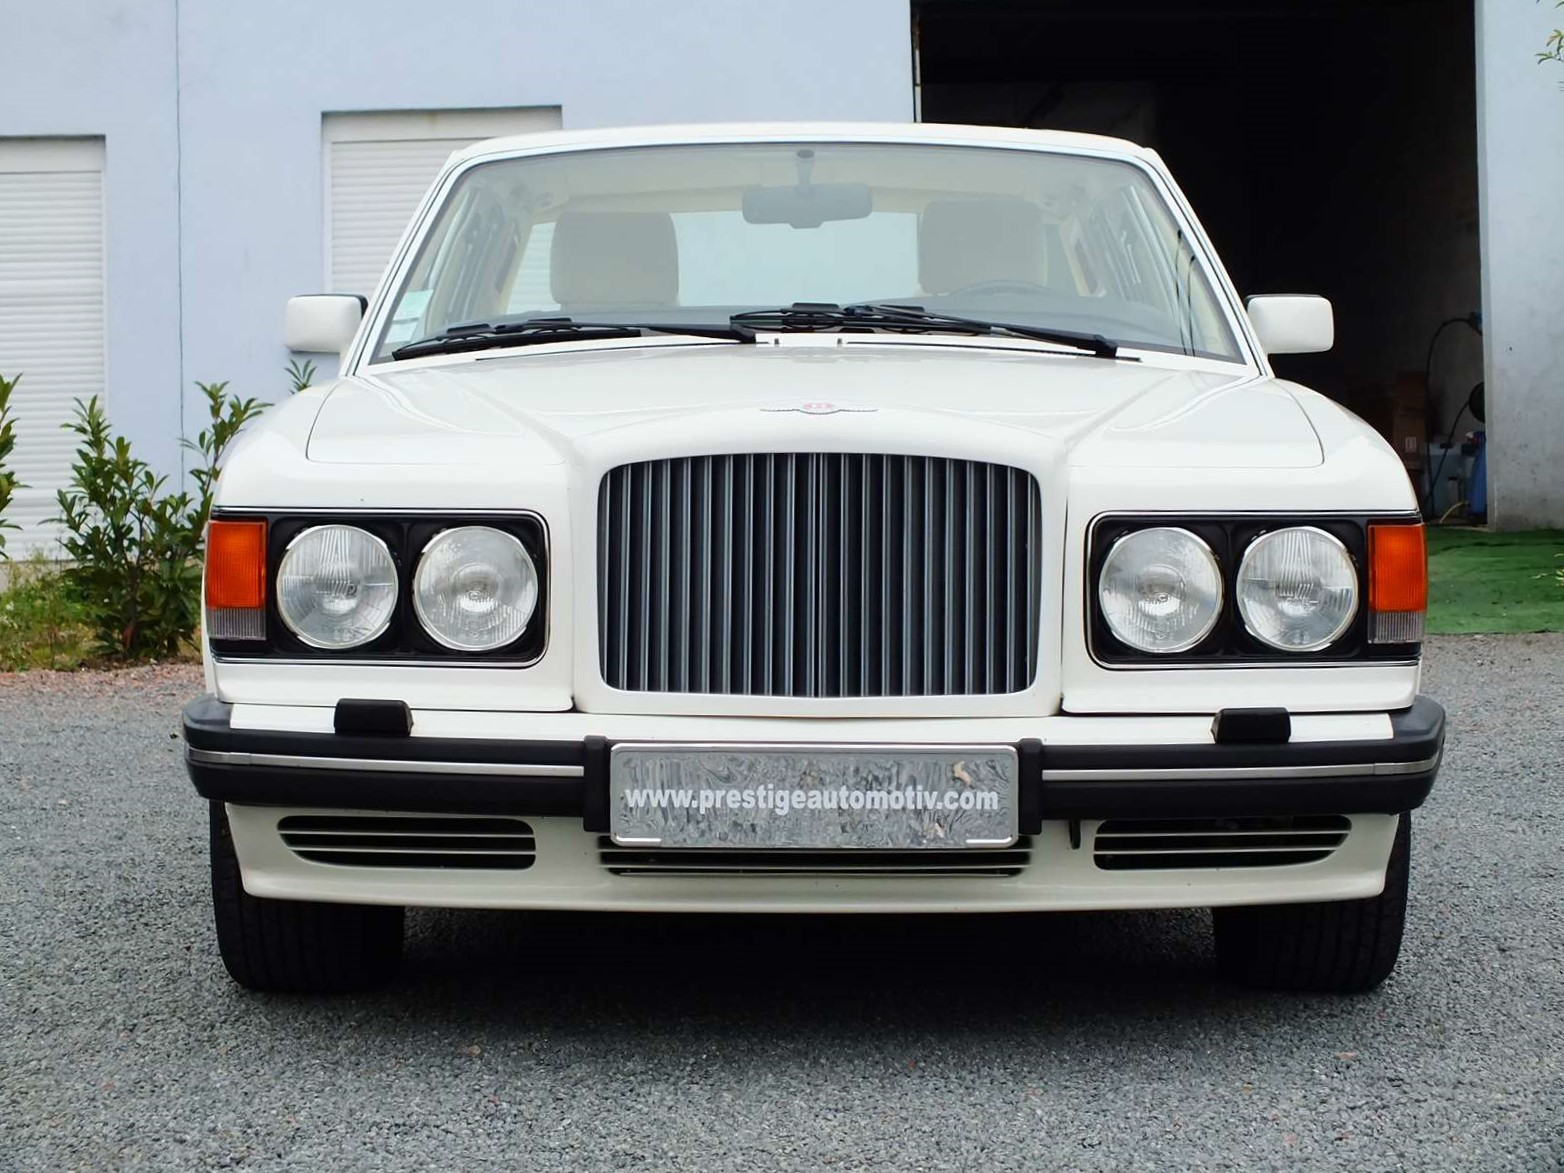 Bentley Turbo RL 1995